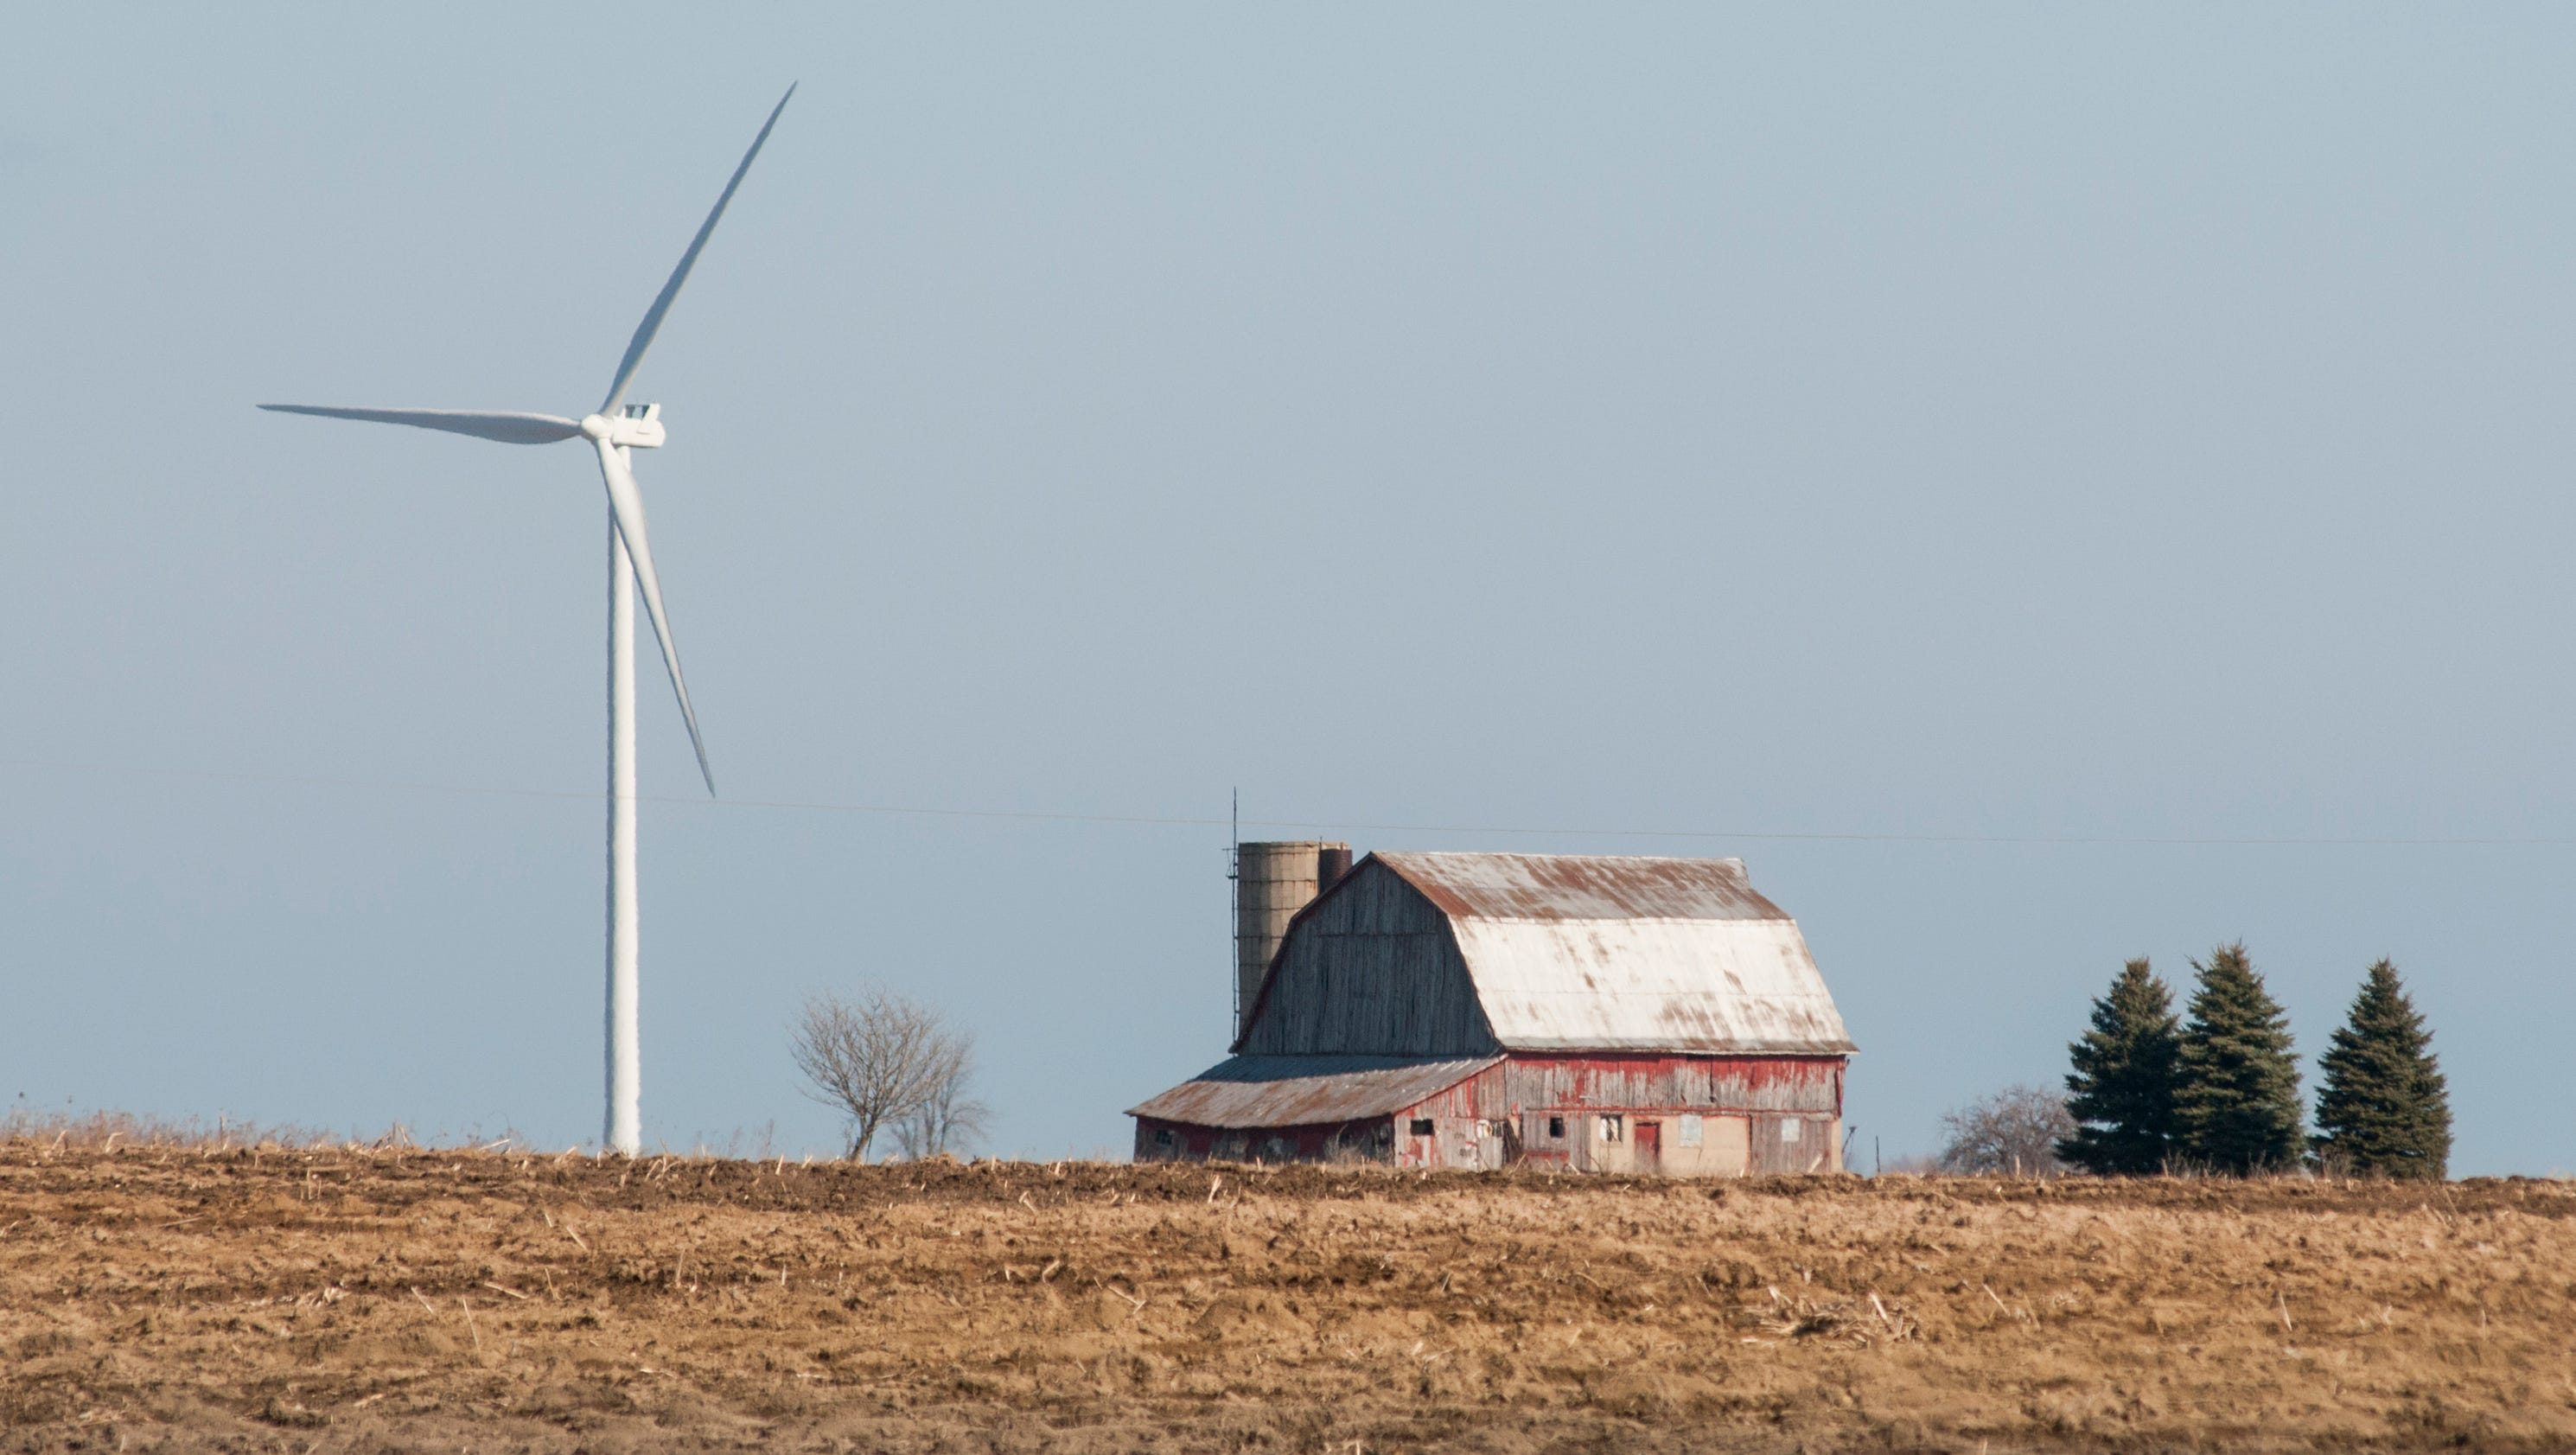 St Clair County to consider rules for wind farms